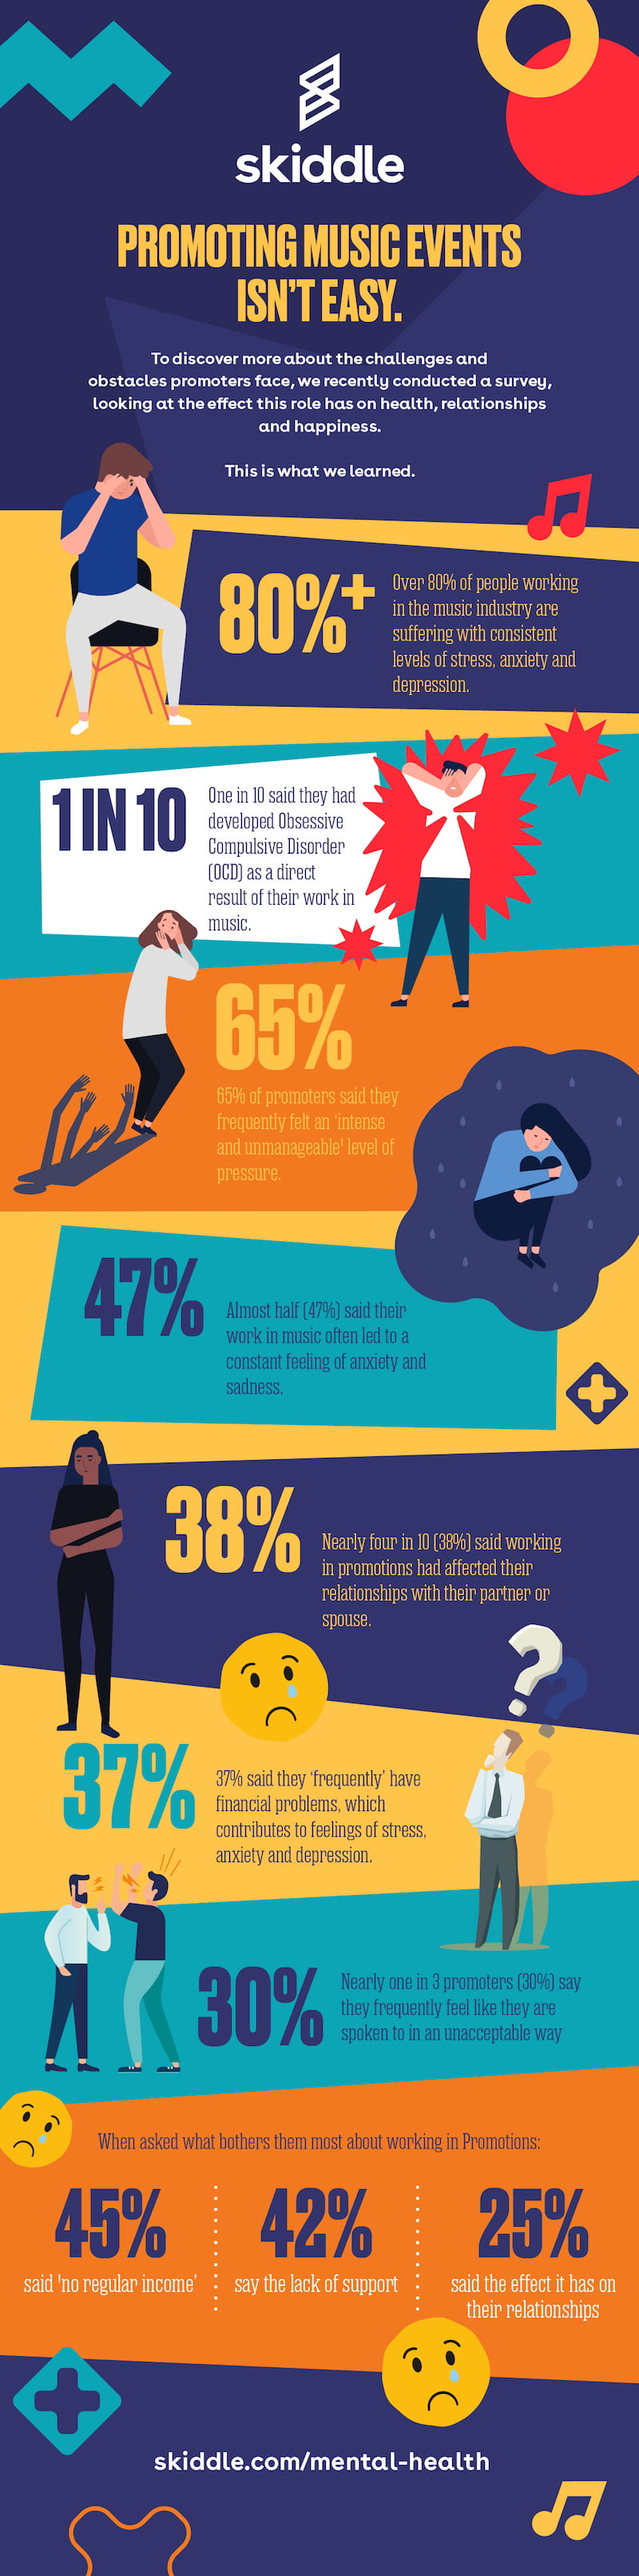 Skiddle mental health infographic